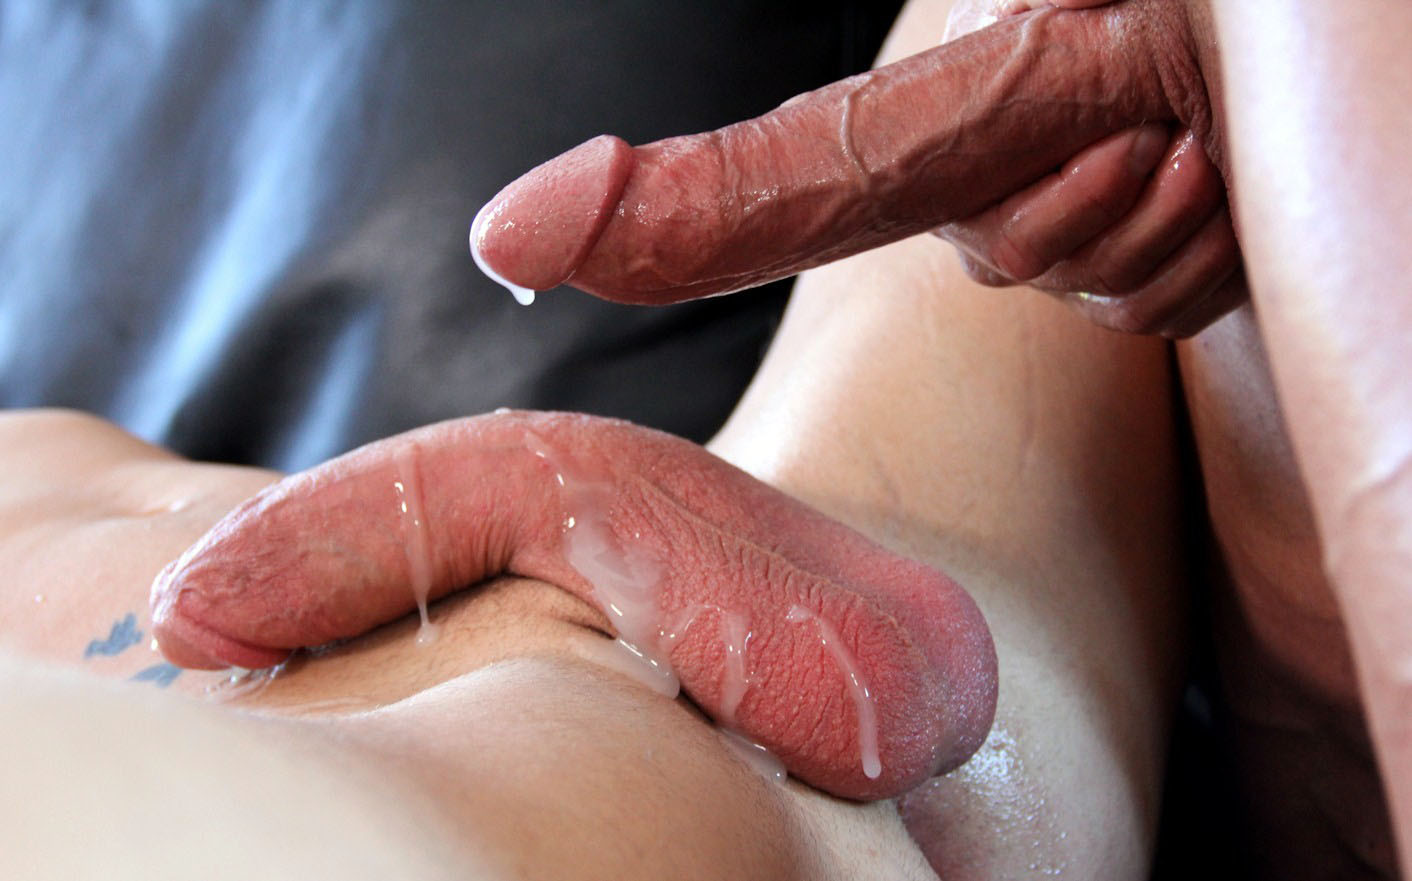 Cum on the cock